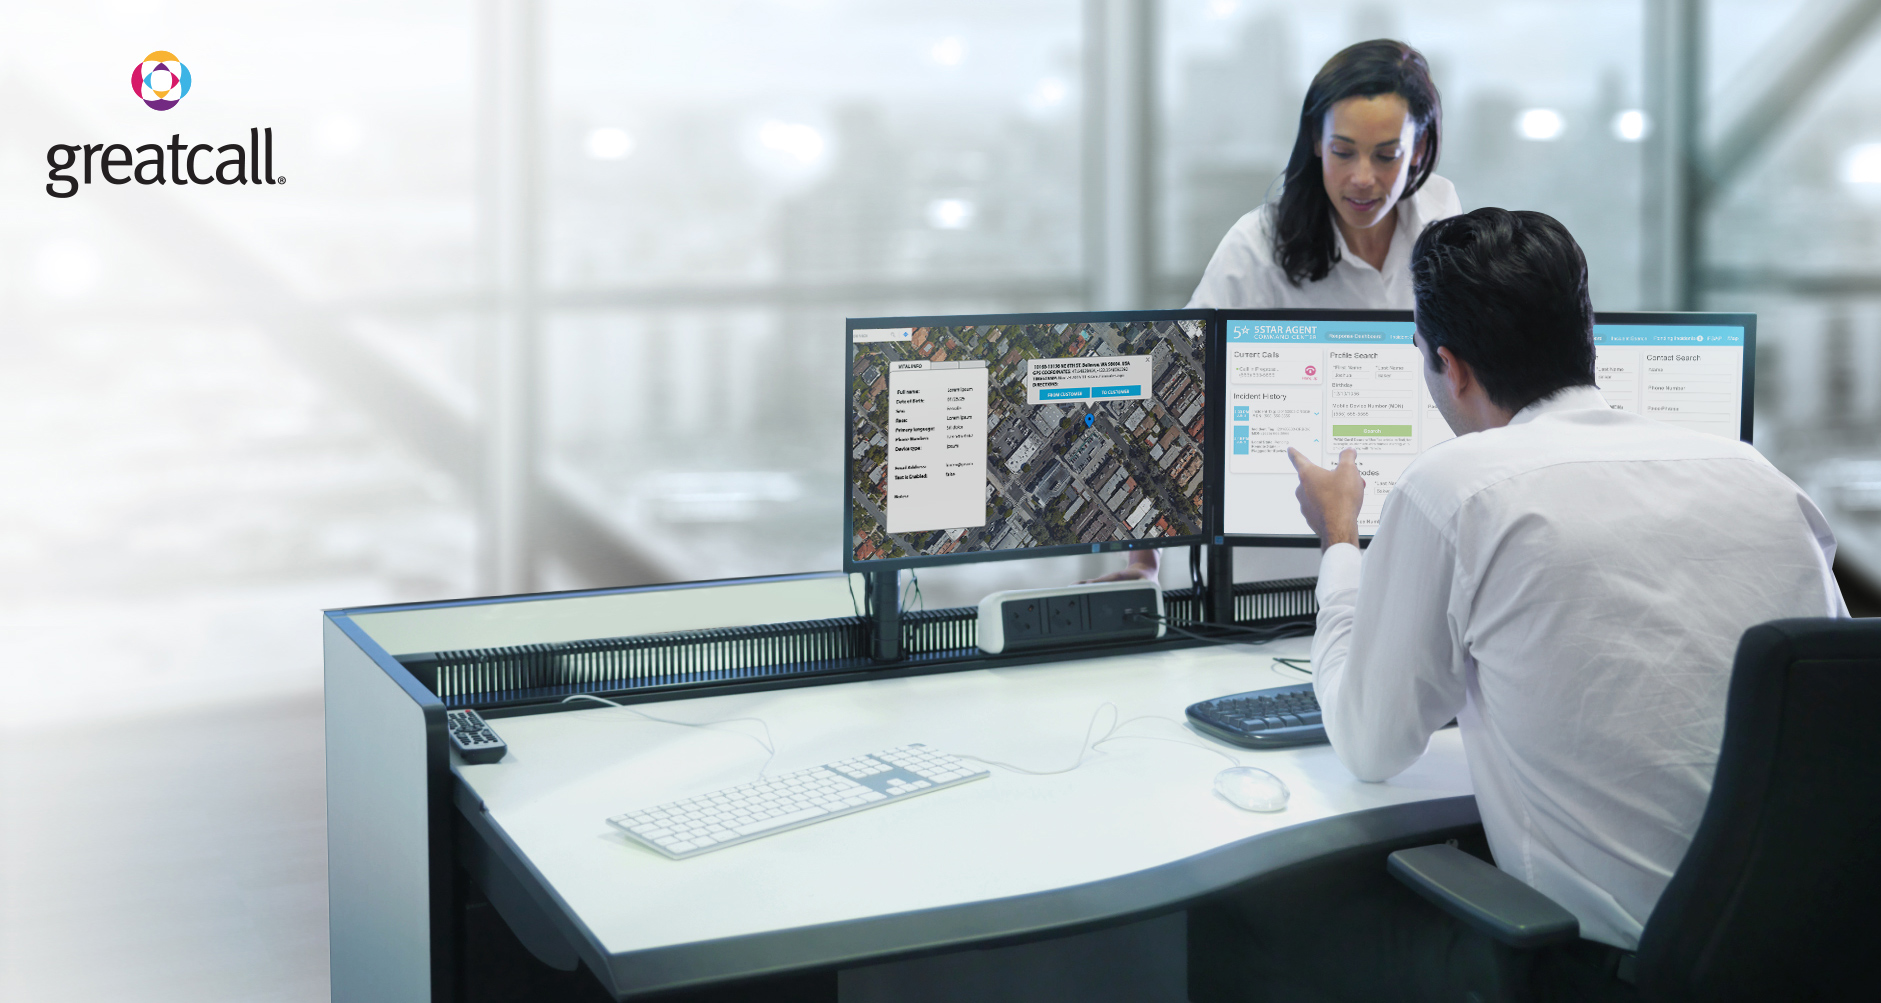 GreatCall stock photo of two people in an office using a computer with three monitors.